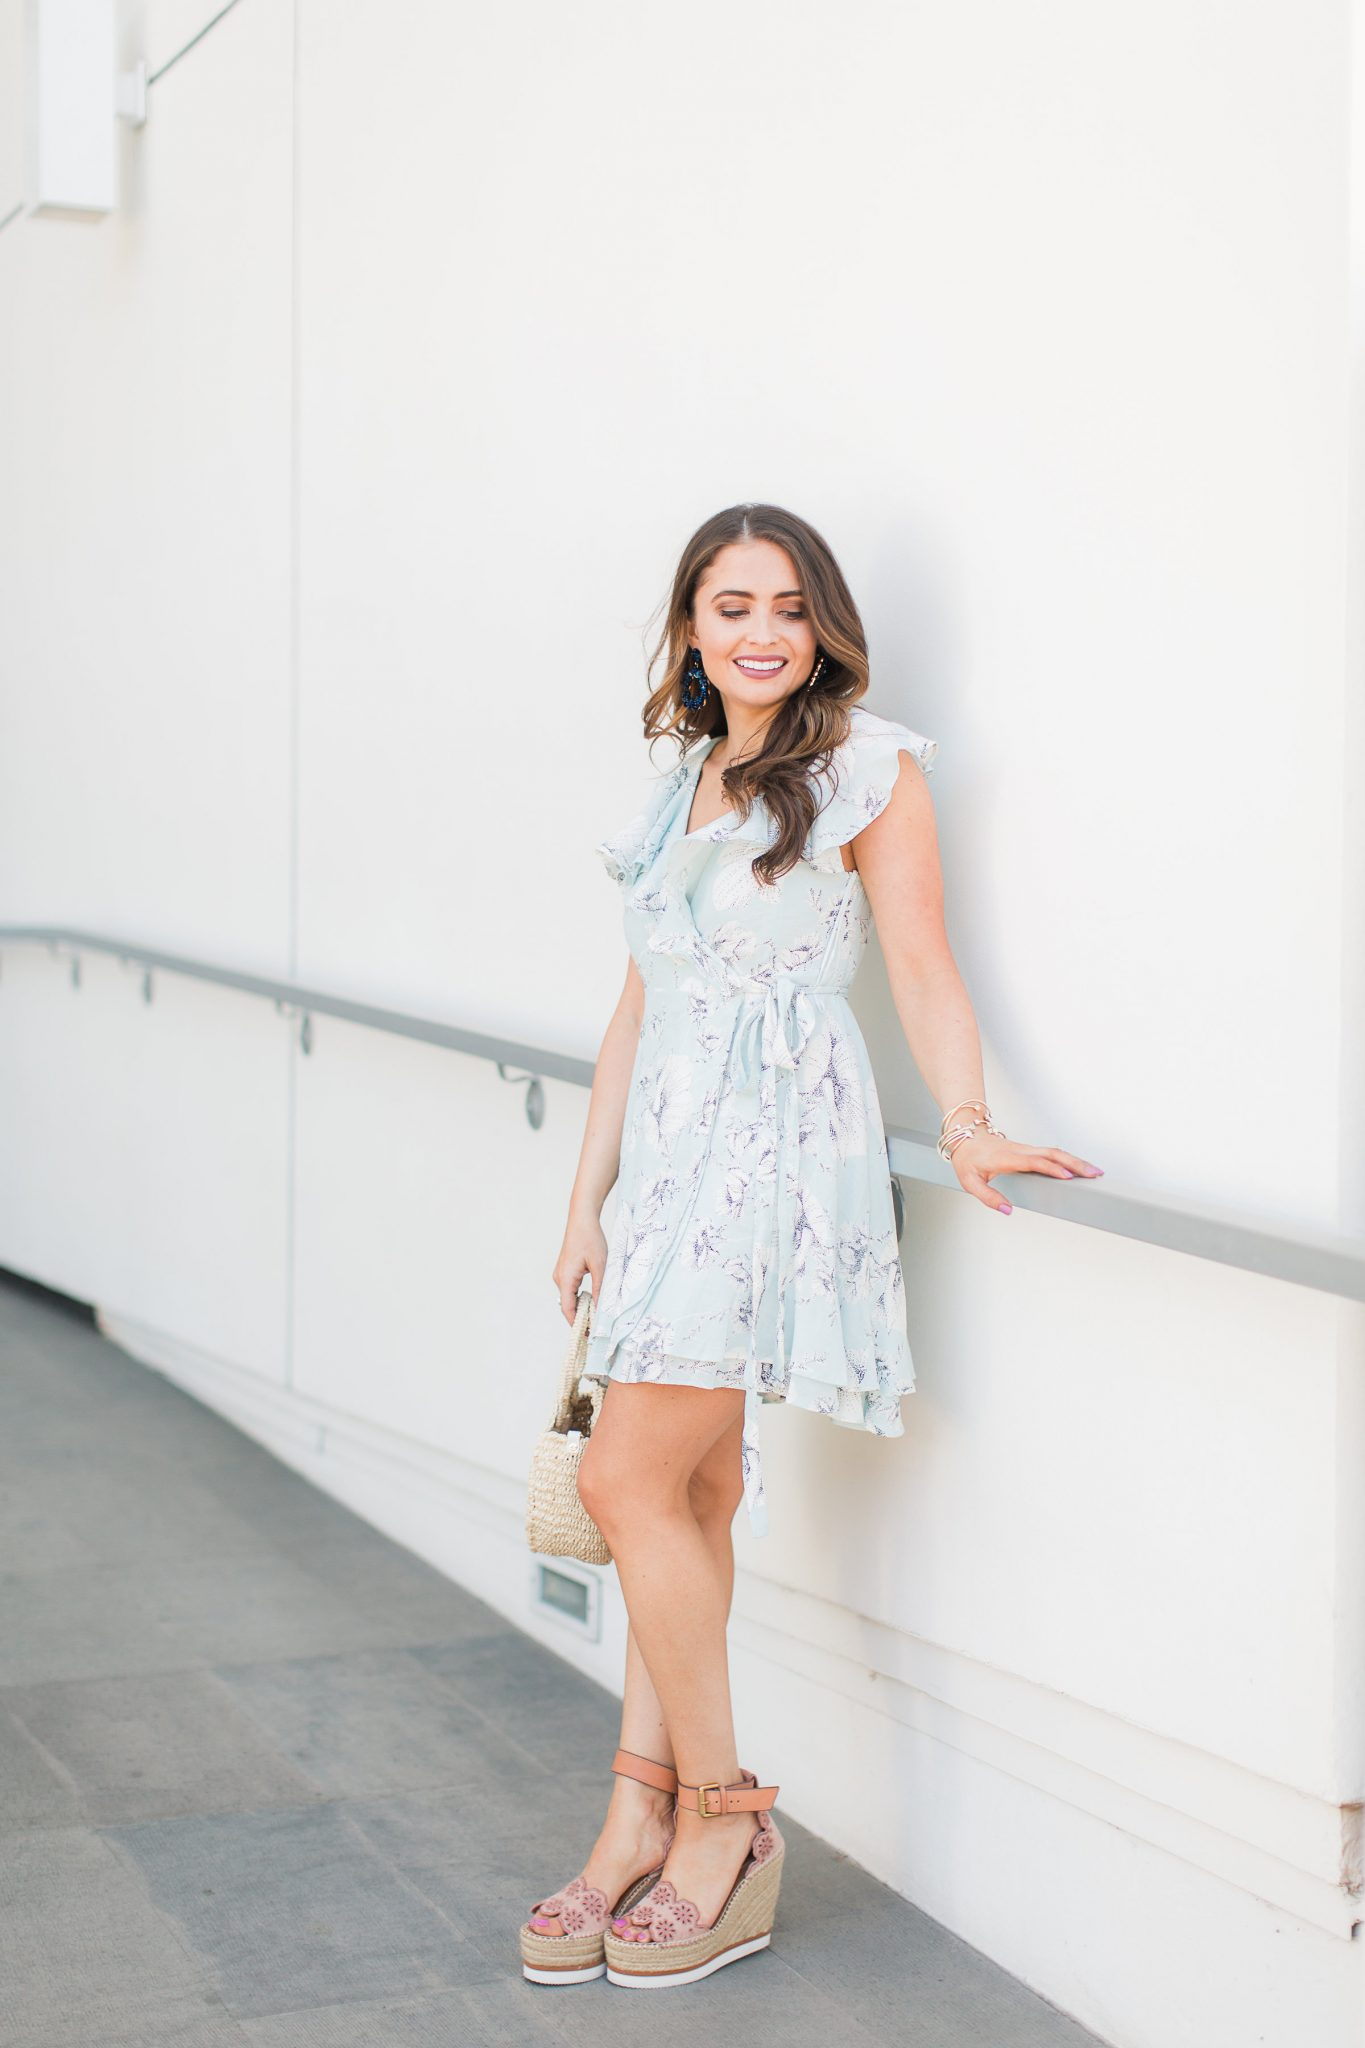 Blue floral wrap dress and espadrille wedges - My Favorite Cute Easter Dresses by popular Orange County fashion blogger Maxie Elise